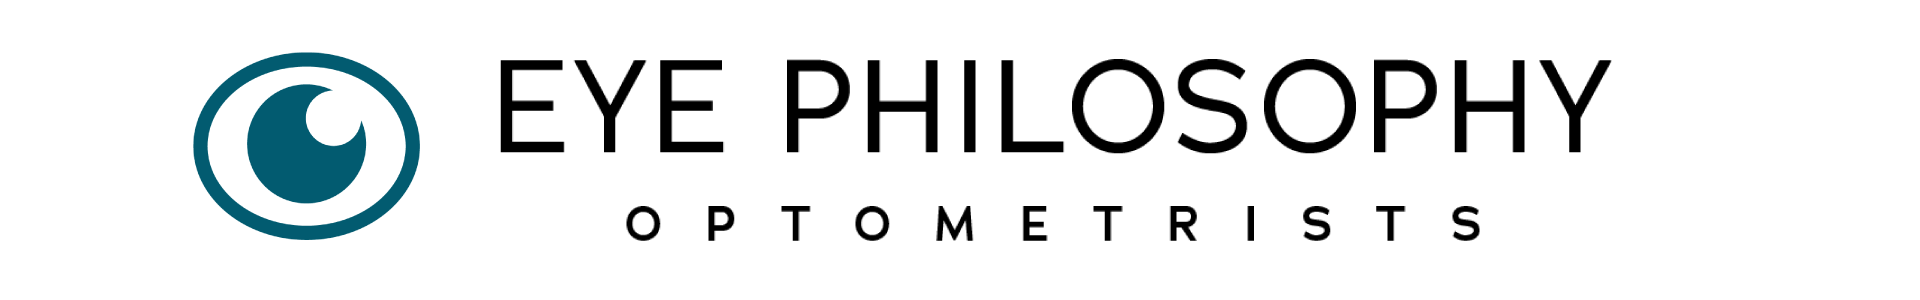 EYE PHILOSOPHY OPTOMETRISTS